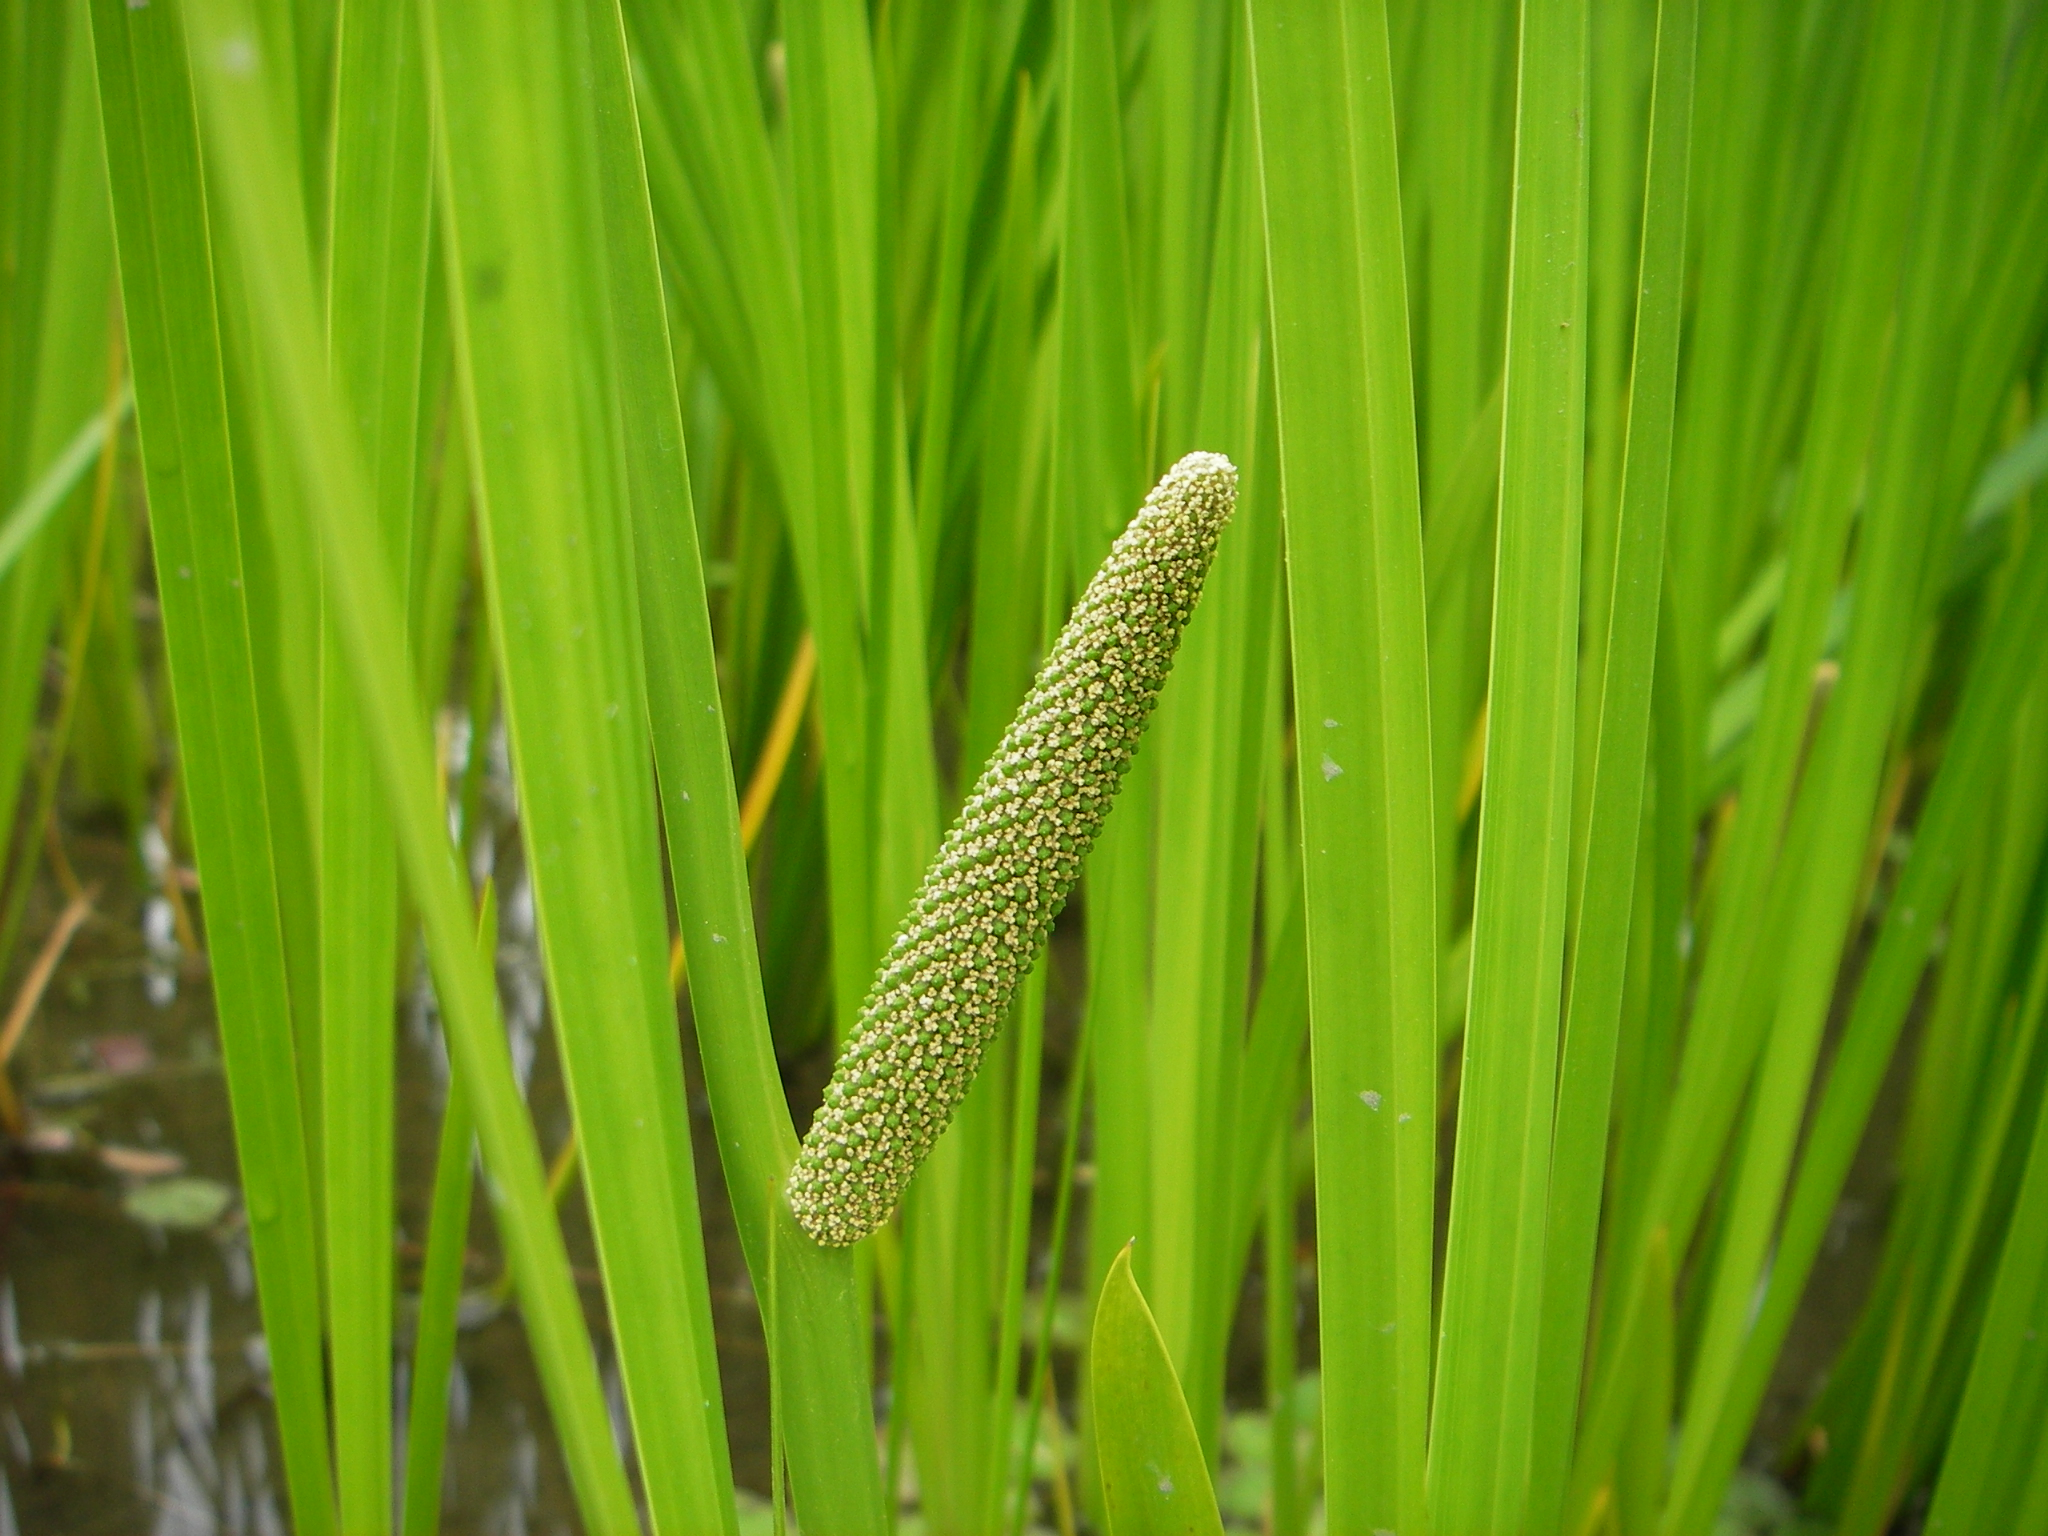 calamus chatrooms Acorus calamus (also called sweet flag or calamus, among many common names) is a species of flowering plant, a tall wetland monocot of the acoraceae family, in the.